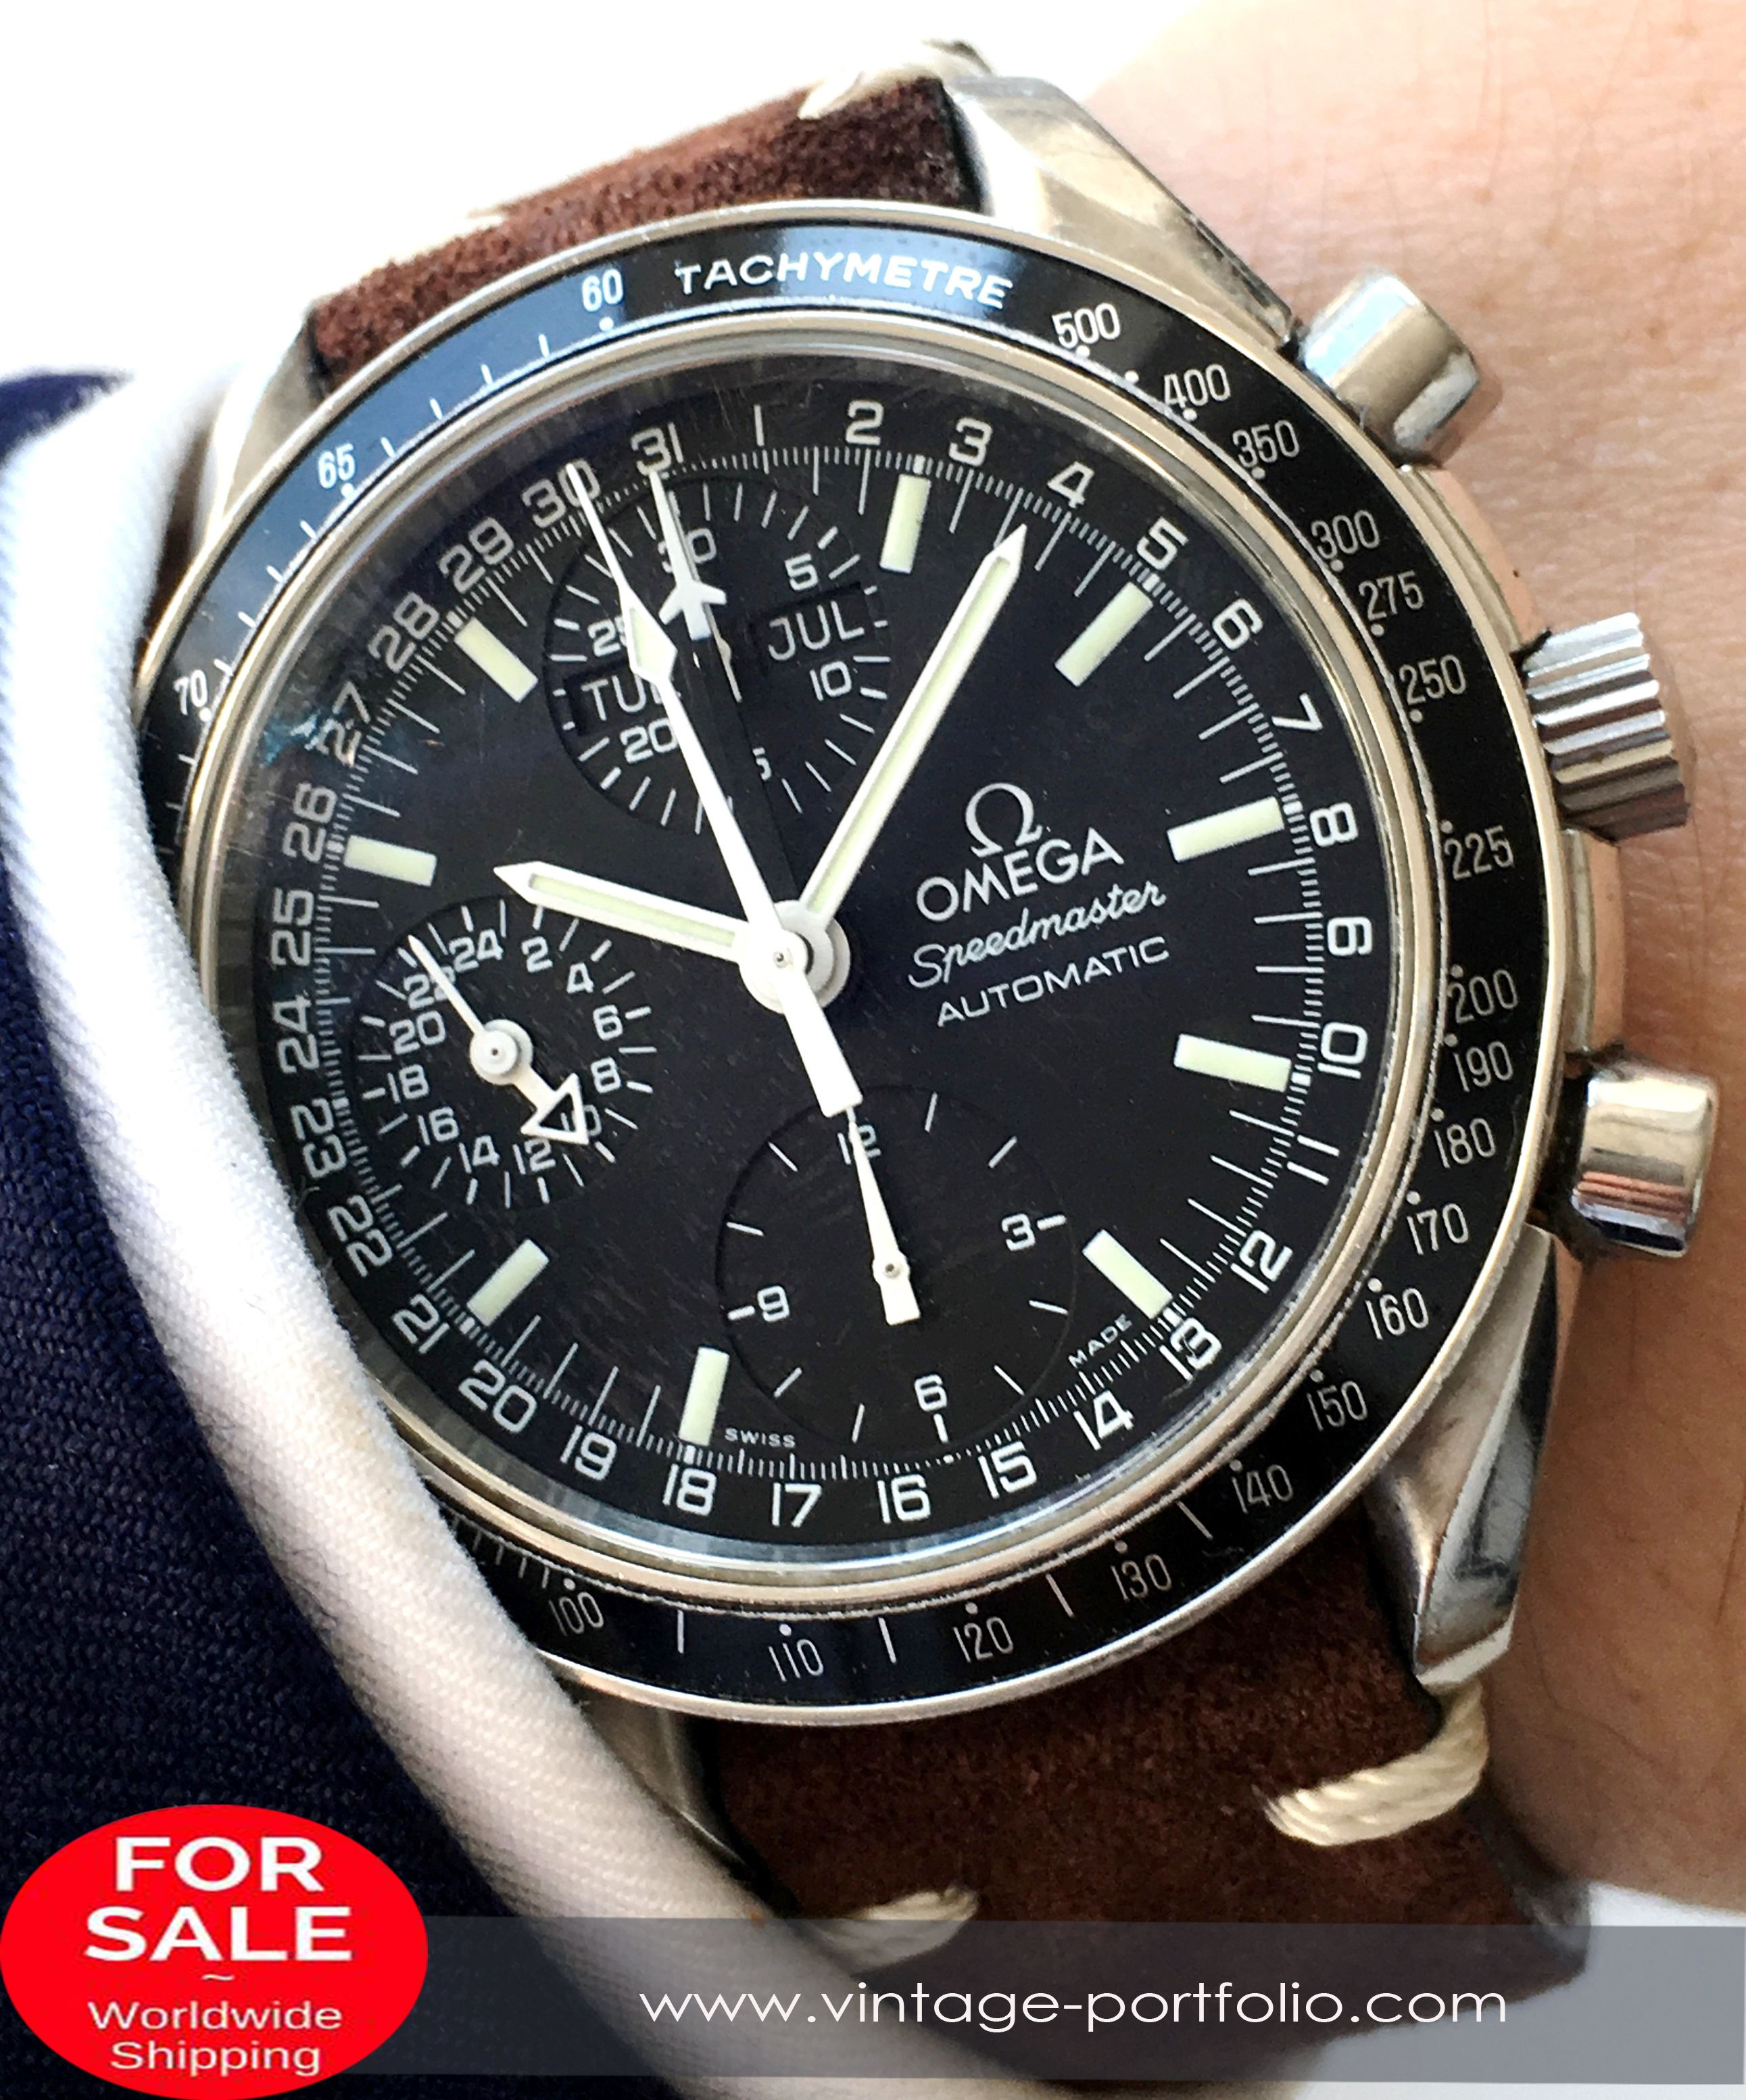 1220e060f6a Original Omega Speedmaster Automatik Automatic Reduced Triple Date  omega   omegawatches  omegavintage  vintageos  militarywatches